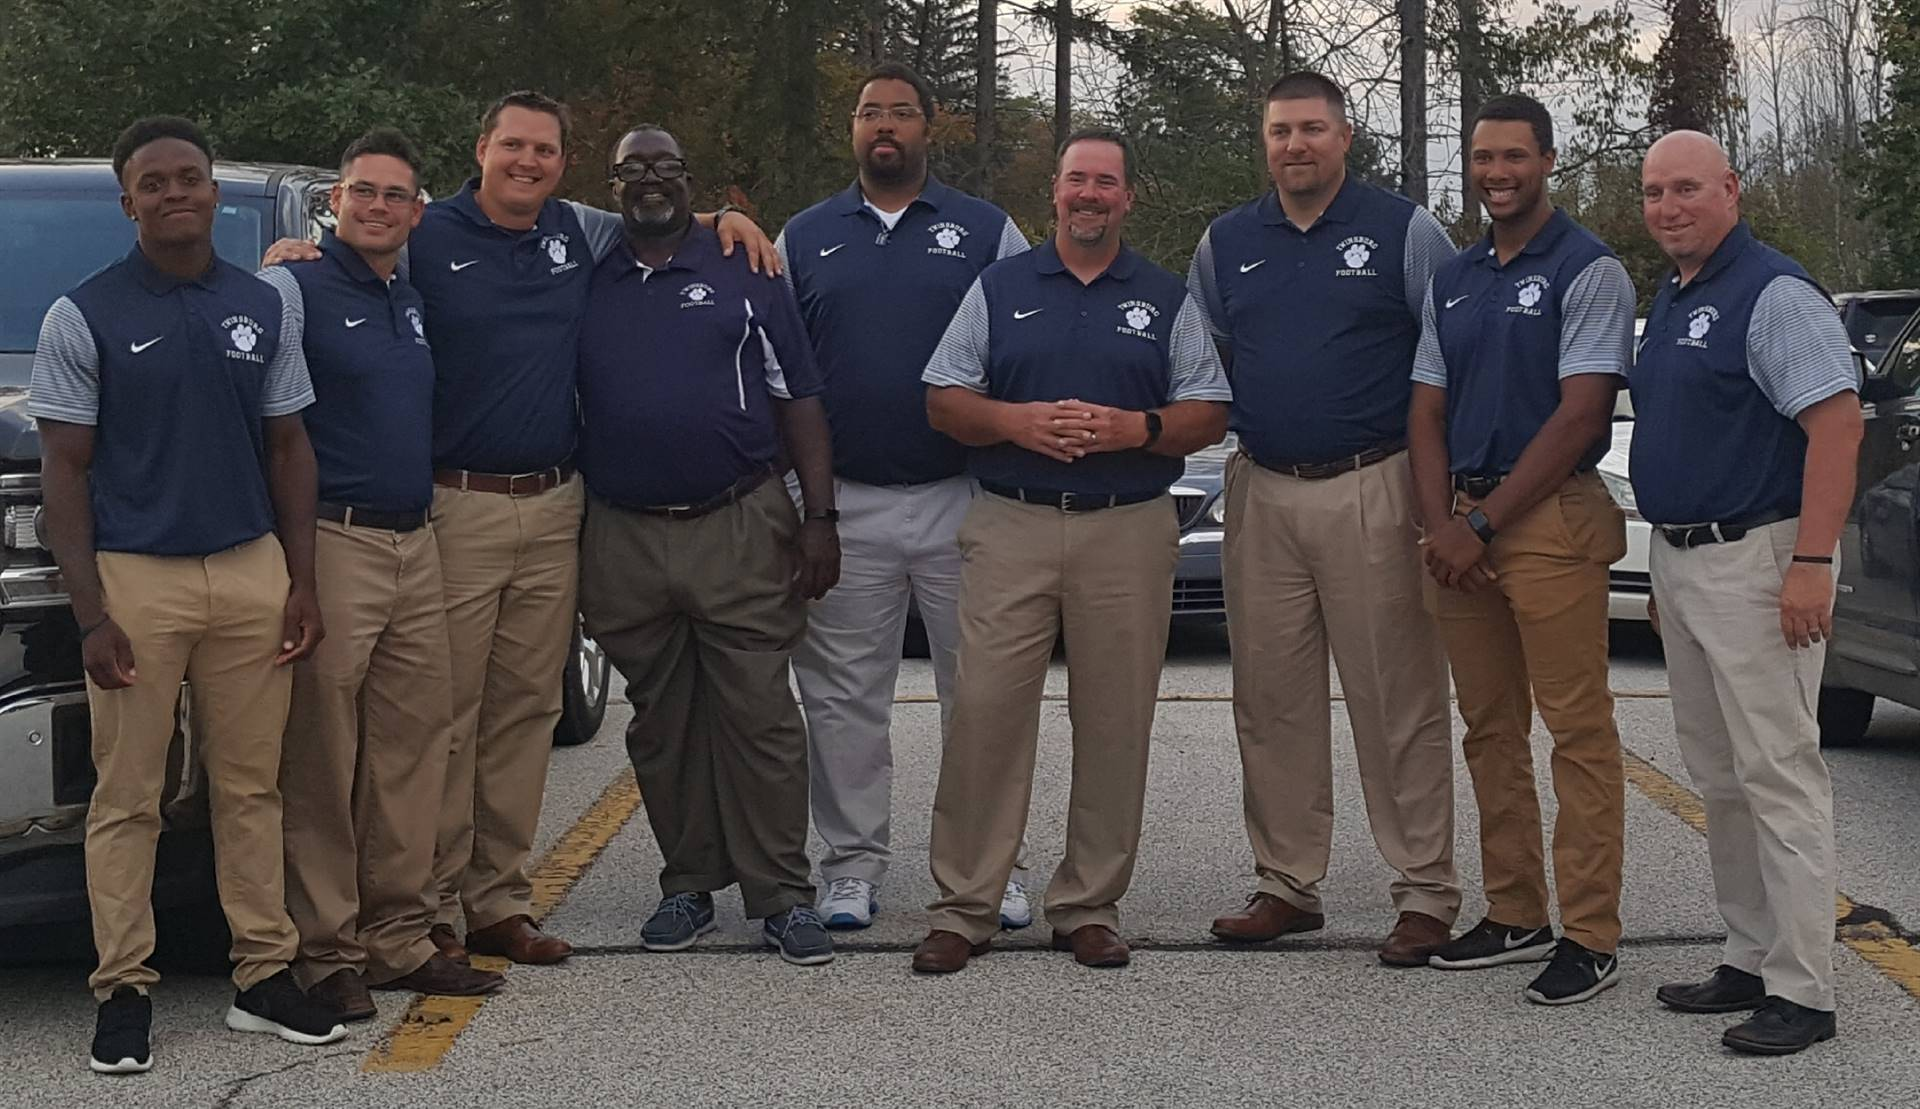 2017 Coaching Staff